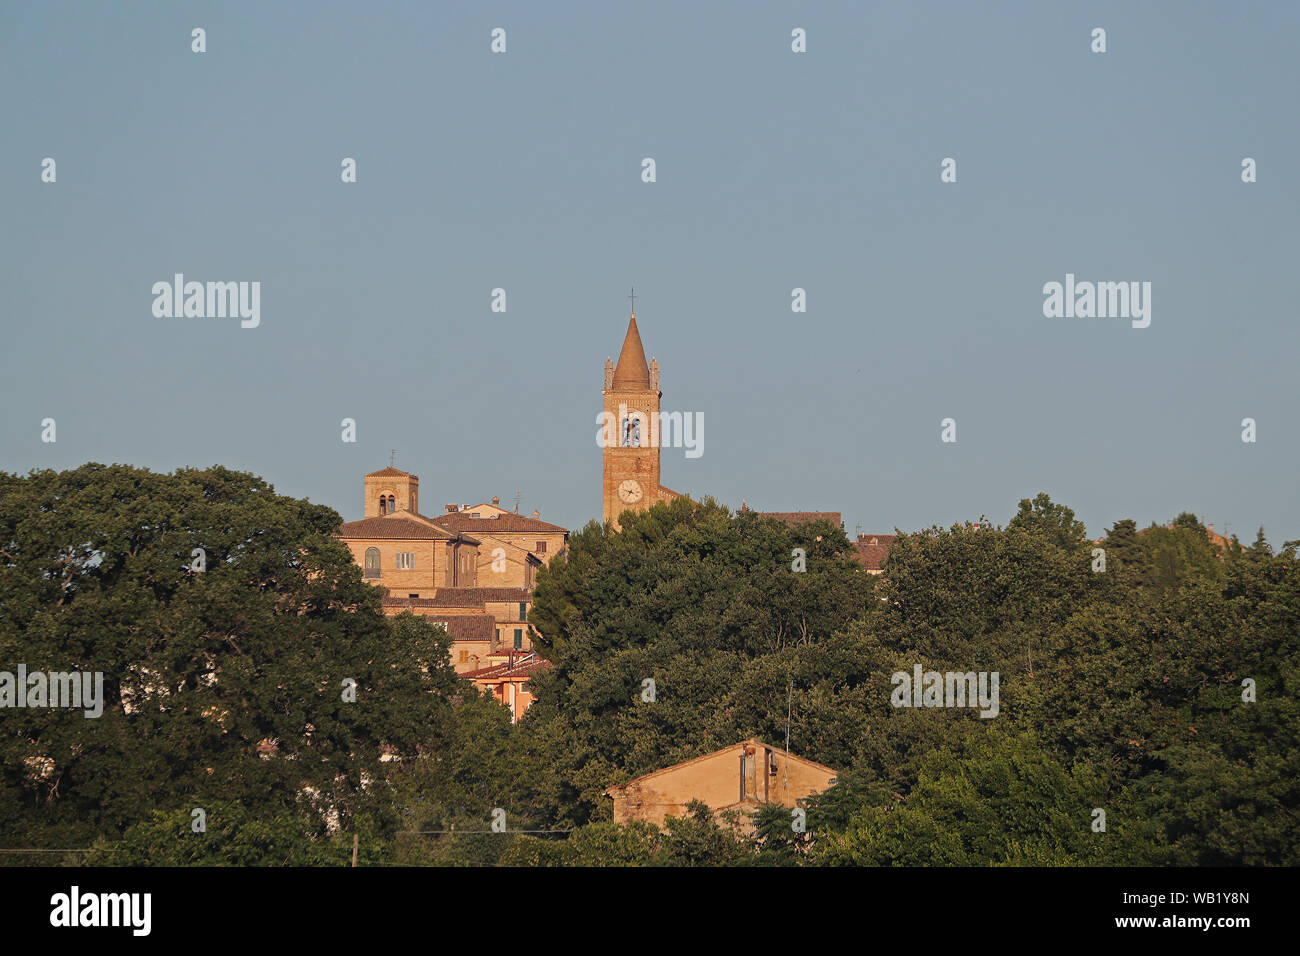 clock tower on the church in the Medieval village of Montecassiano  in the Marches or Le Marche region of central Italy near the town of Macerata Stock Photo